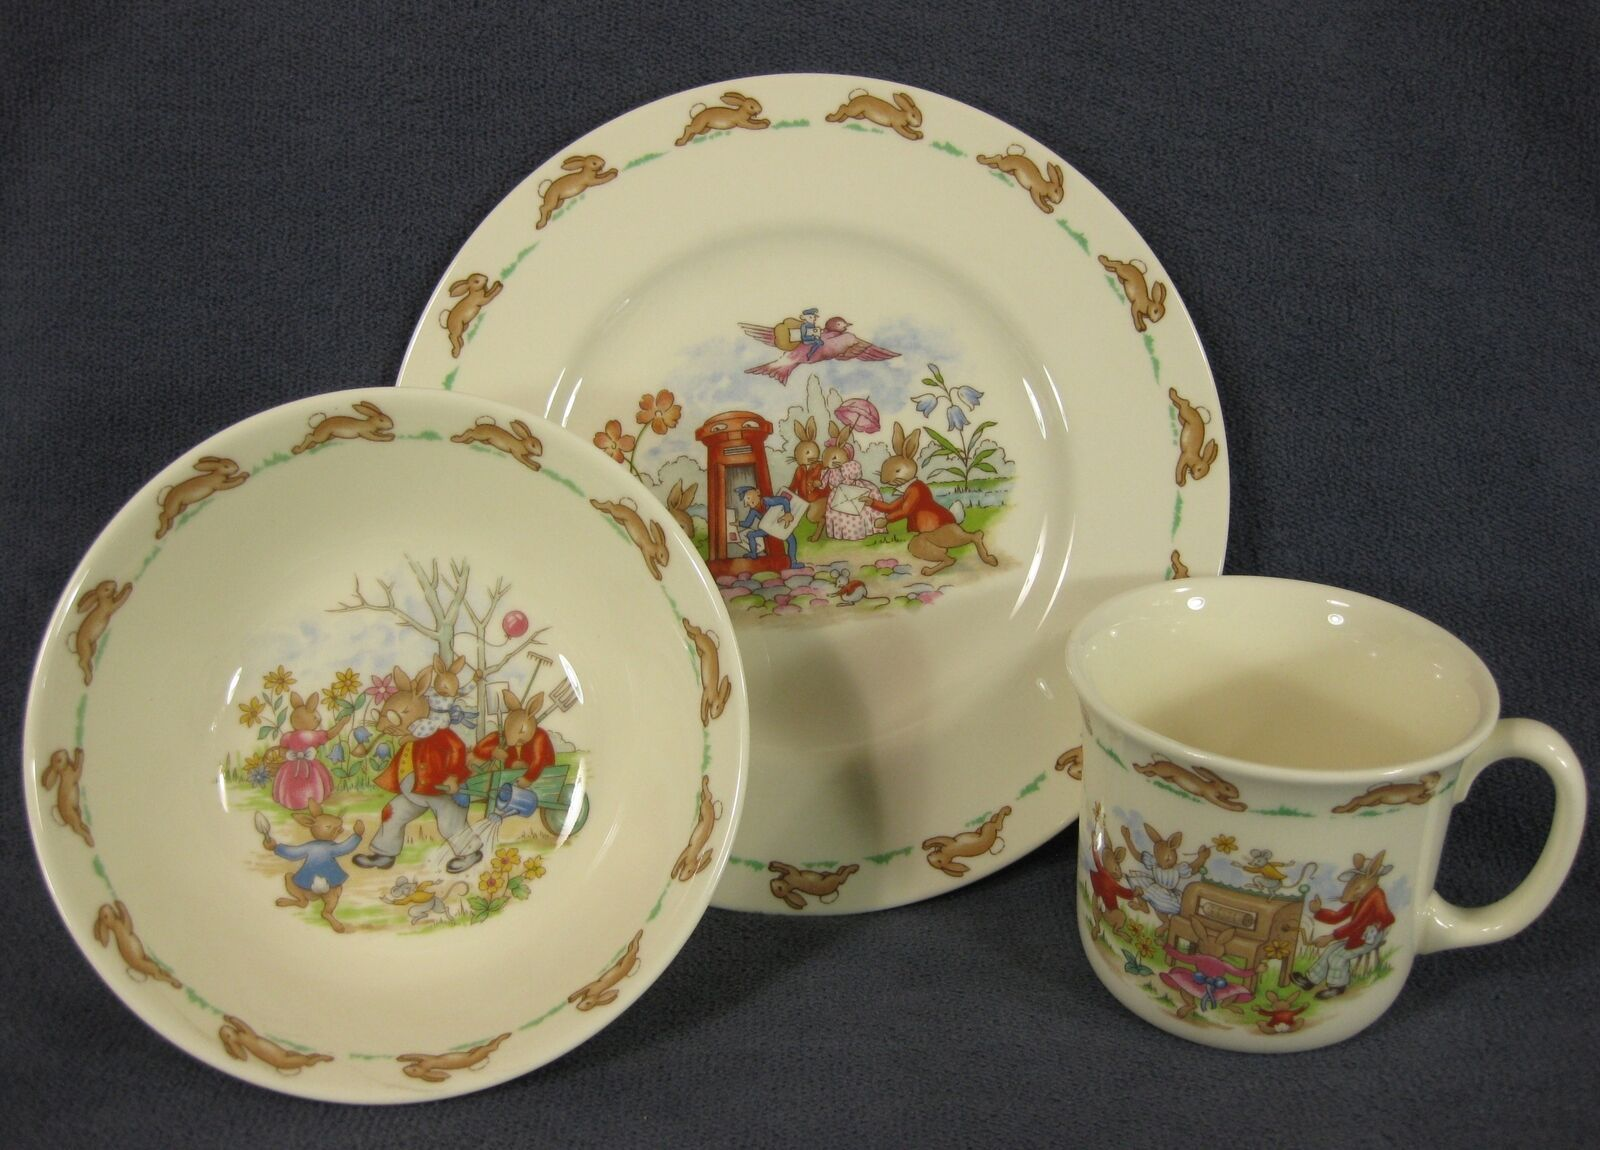 Primary image for  Royal Doulton Bunnykins 3 PC Children's Set Bowl Mug Plate Bone China England